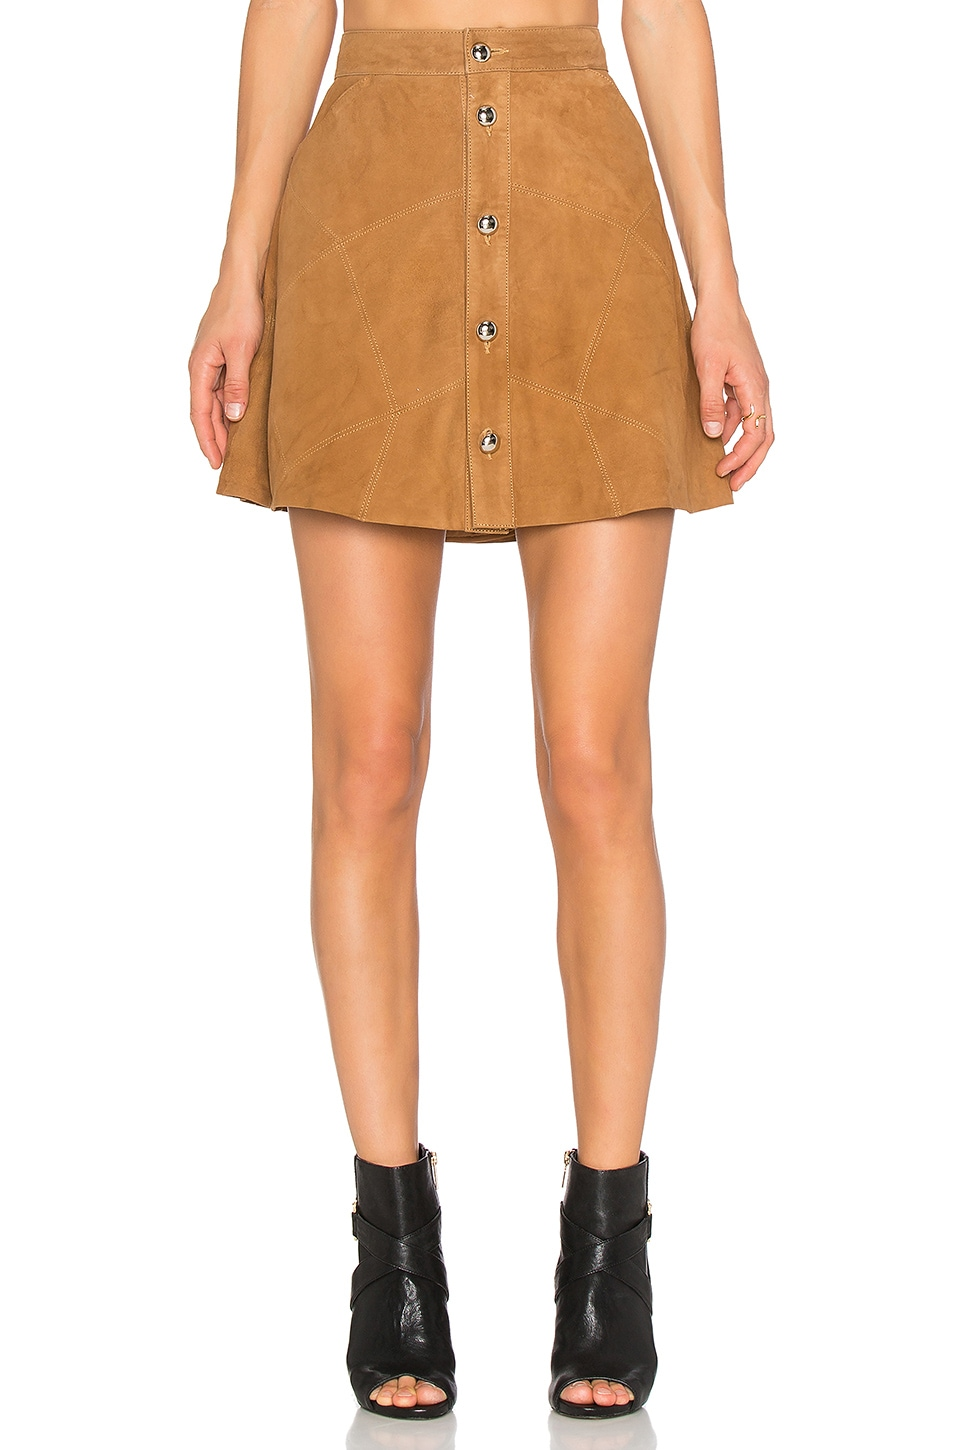 LAMARQUE Leandra Suede Skirt in Tan